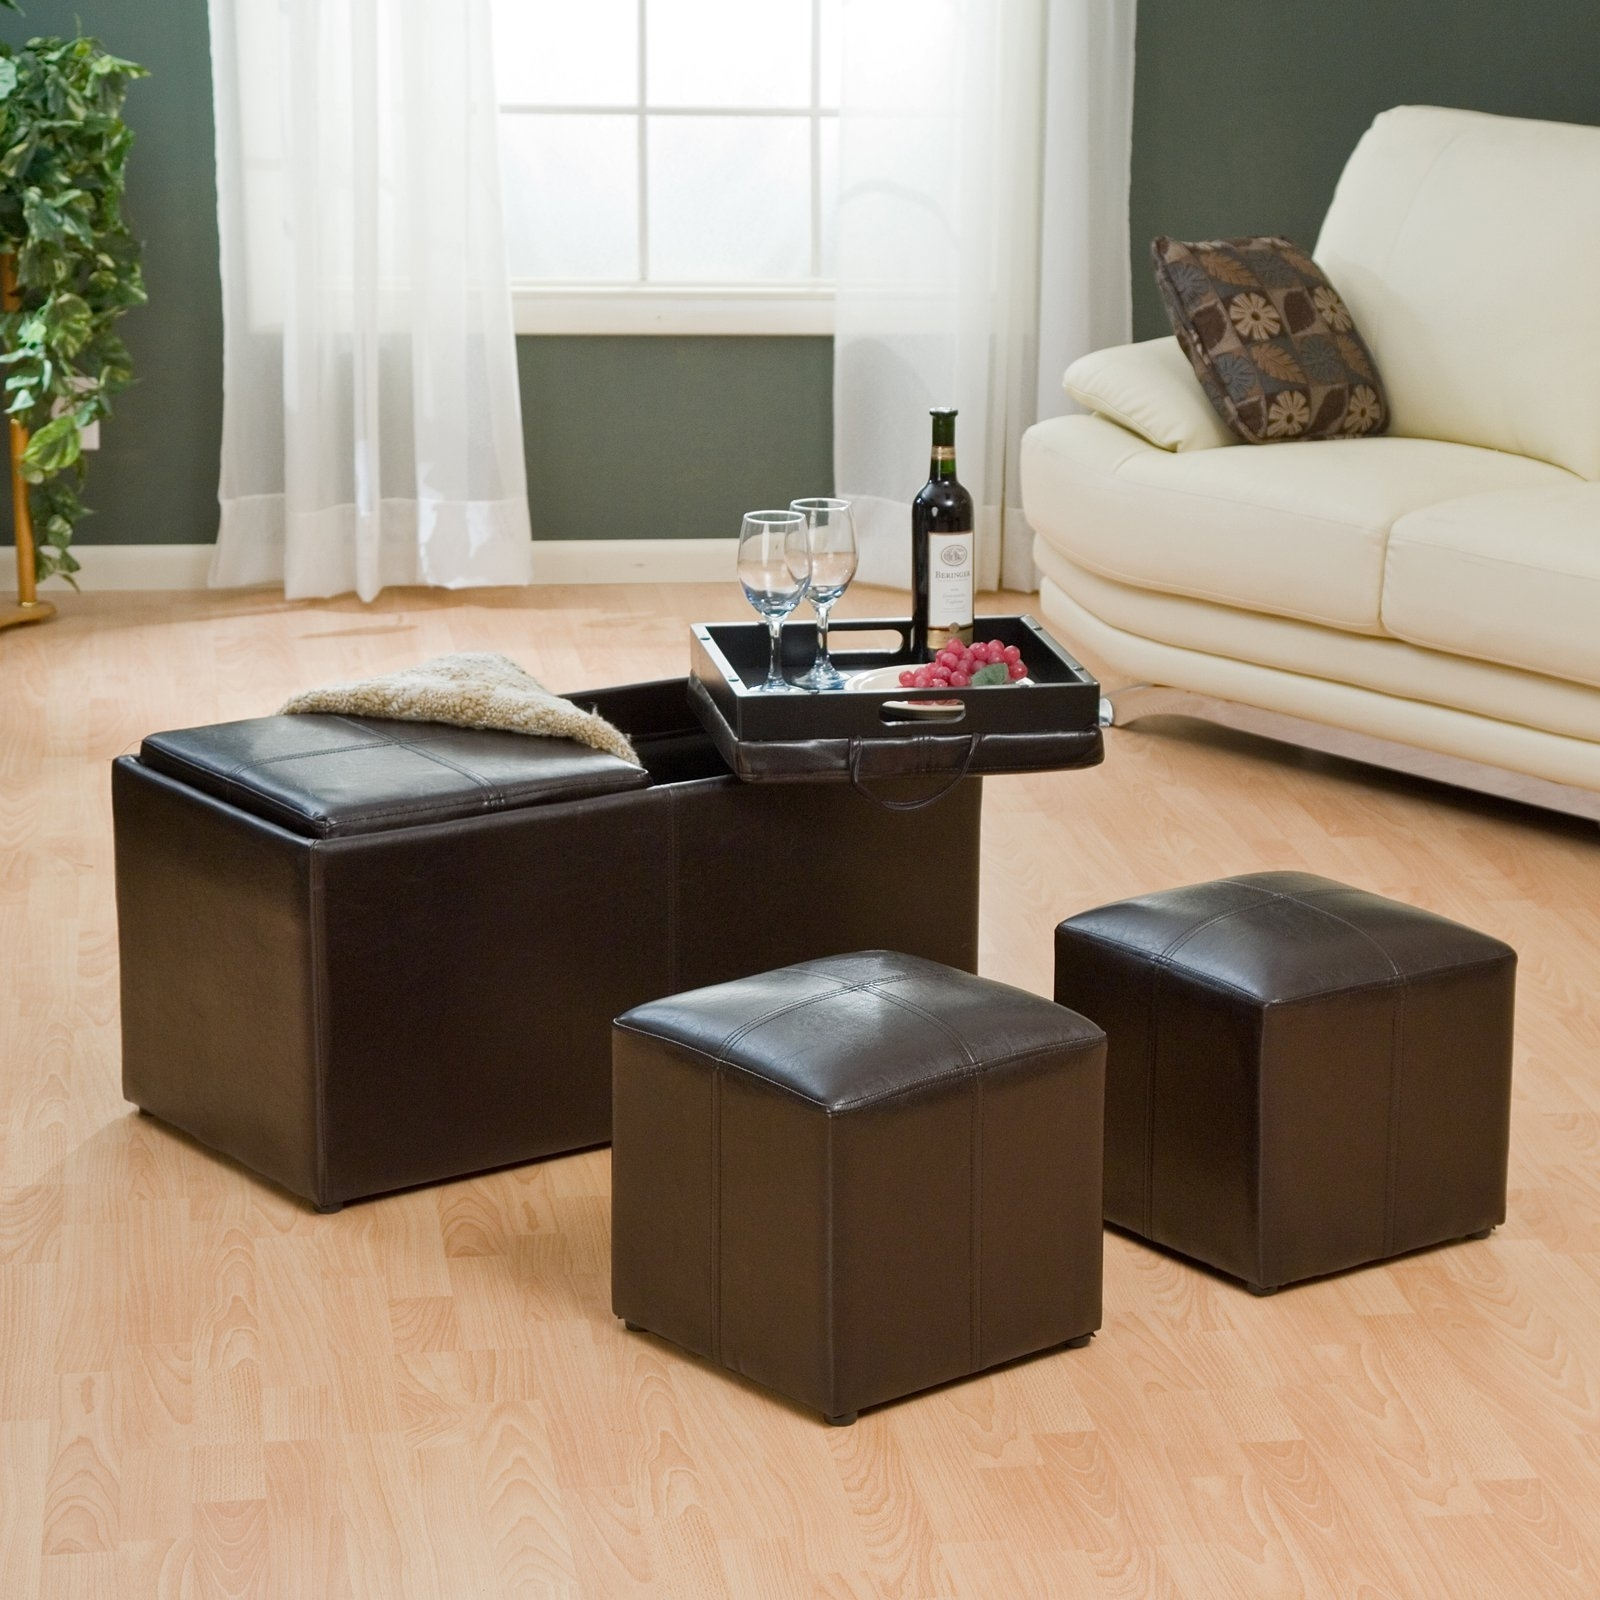 Coffee Table With Ottomans Tray — All Furniture : Get The Most Out For Ottomans With Tray (Image 3 of 10)